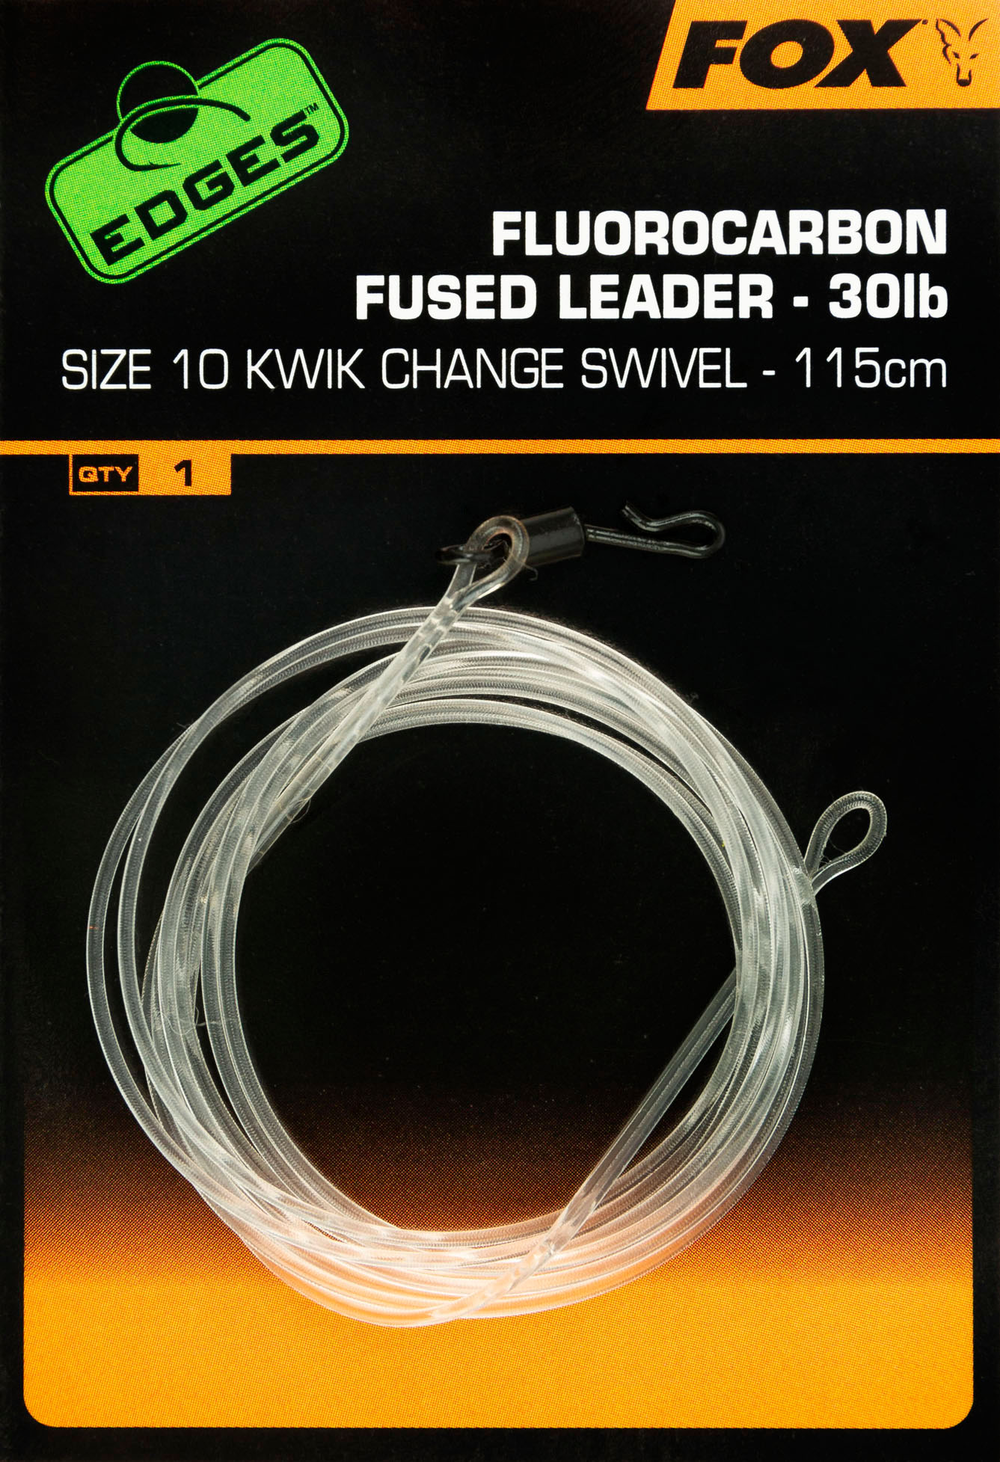 Edges-30lb-Fluorocarbon-Fused-Leader_S10-Kwik-Change-Swivel_115cm.png